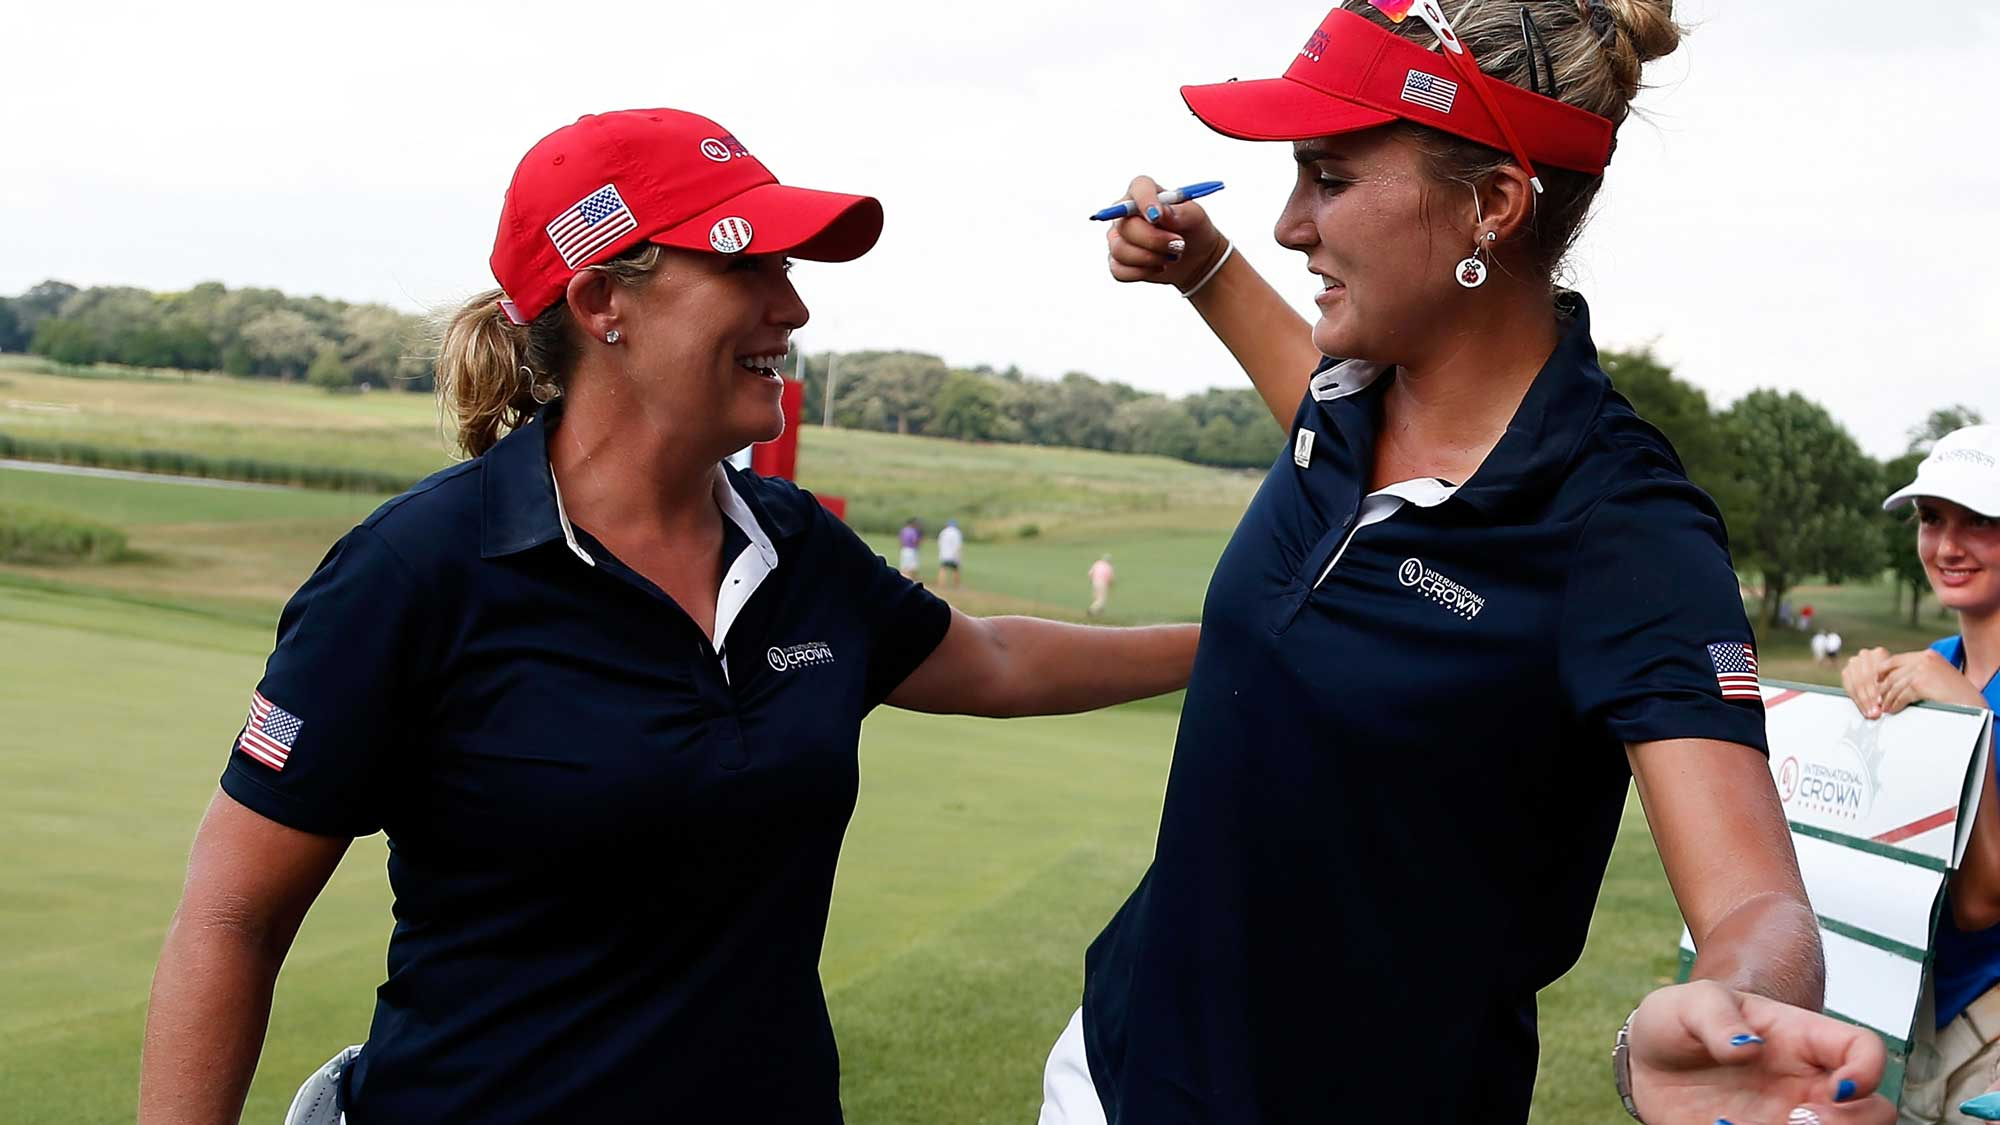 (L) Cristie Kerr and (R) Lexi Thompson of the United States celebrate after winning the 2016 UL International Crown